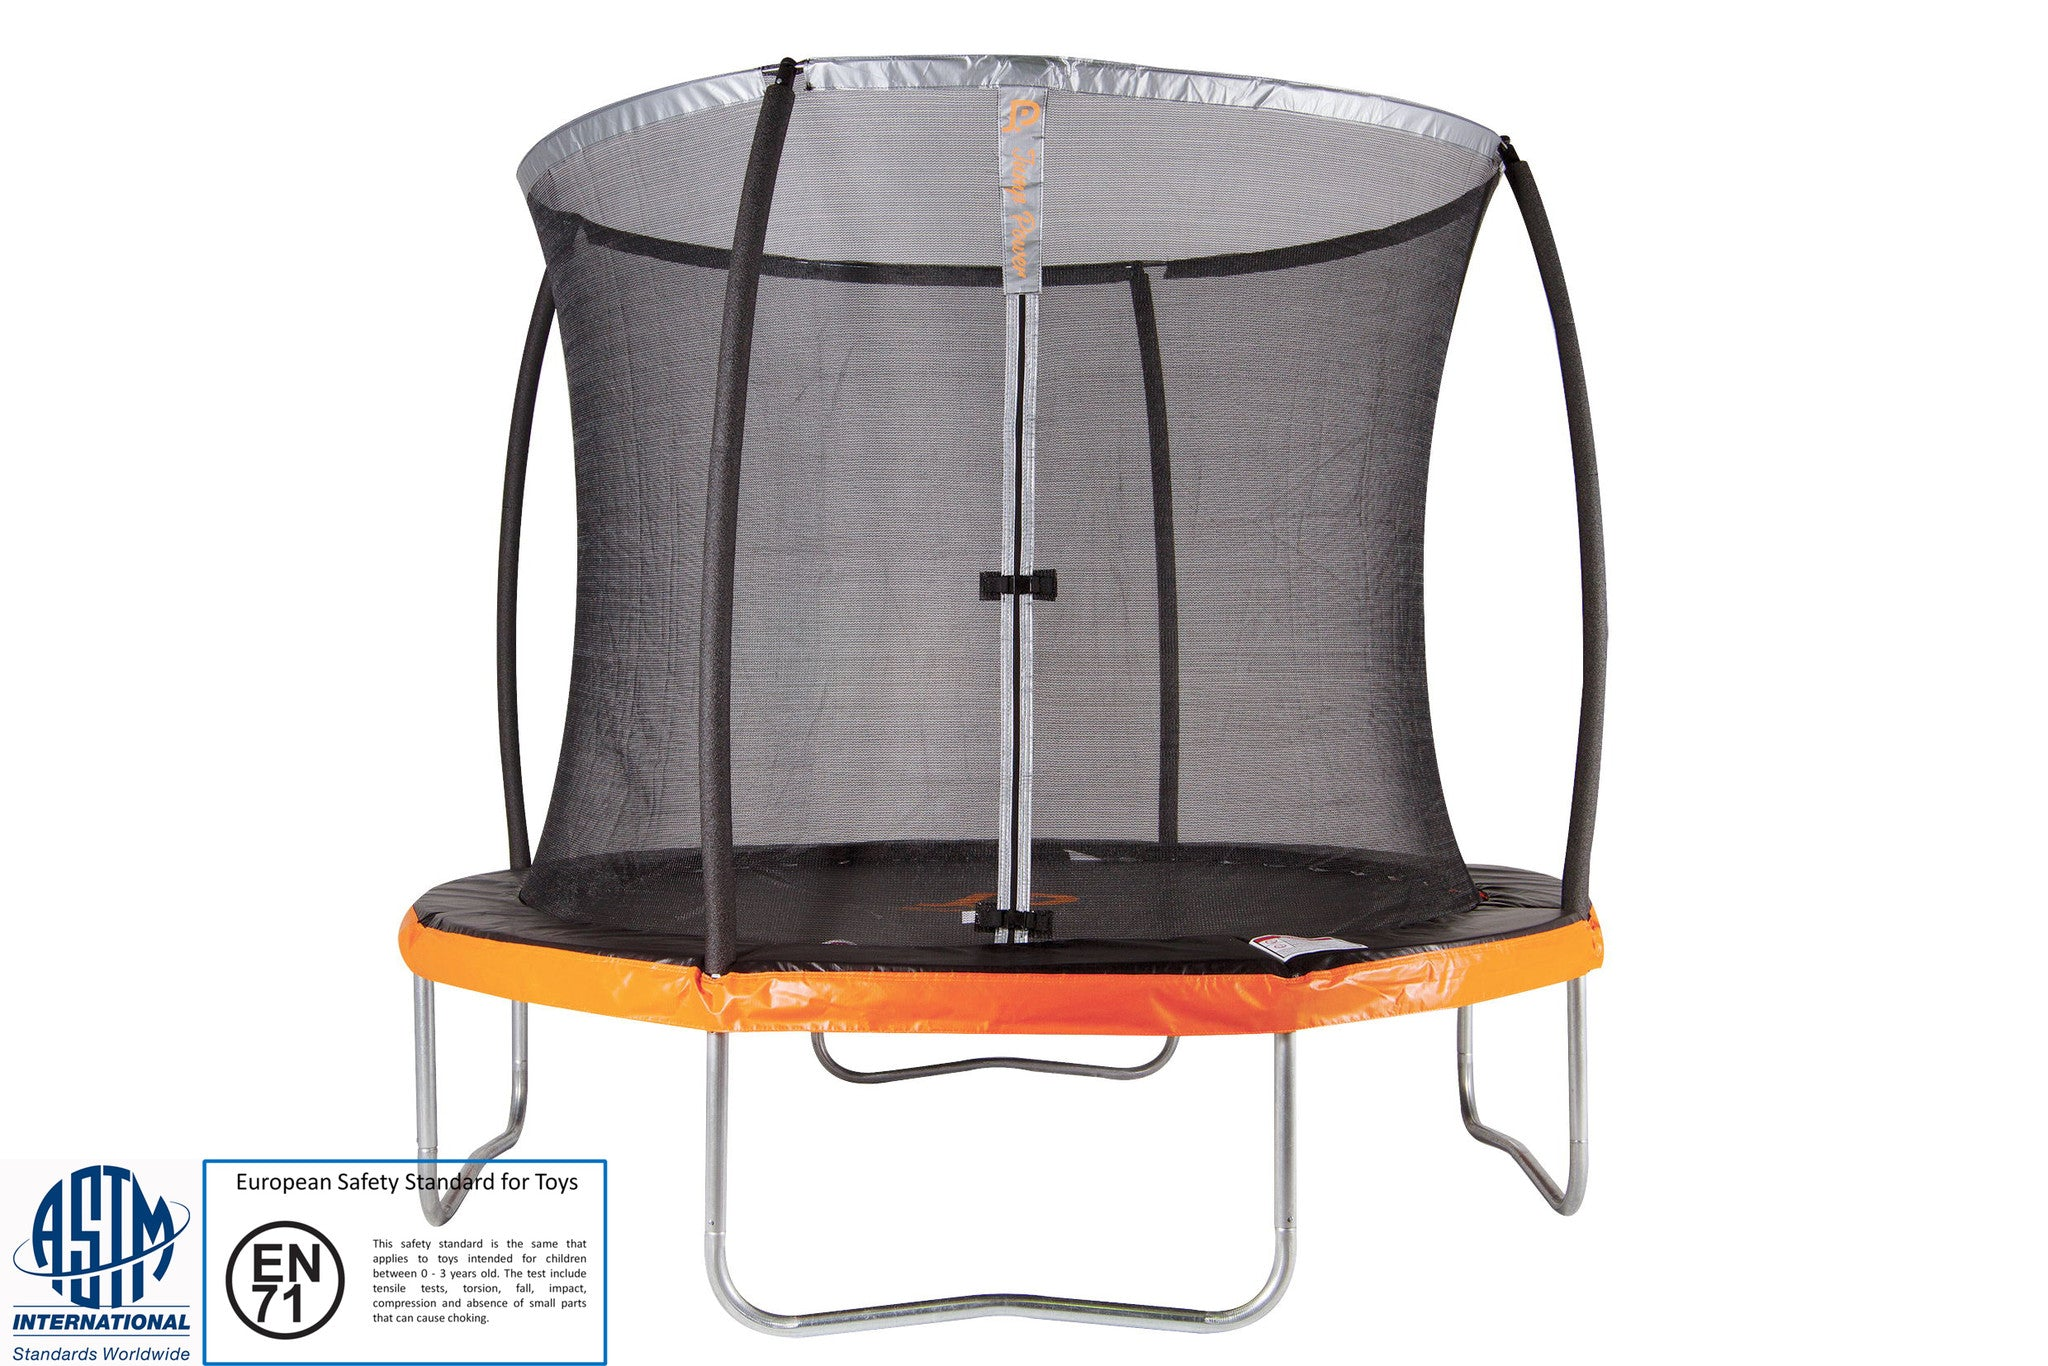 8ft. Trampoline & Safety Net Enclosure